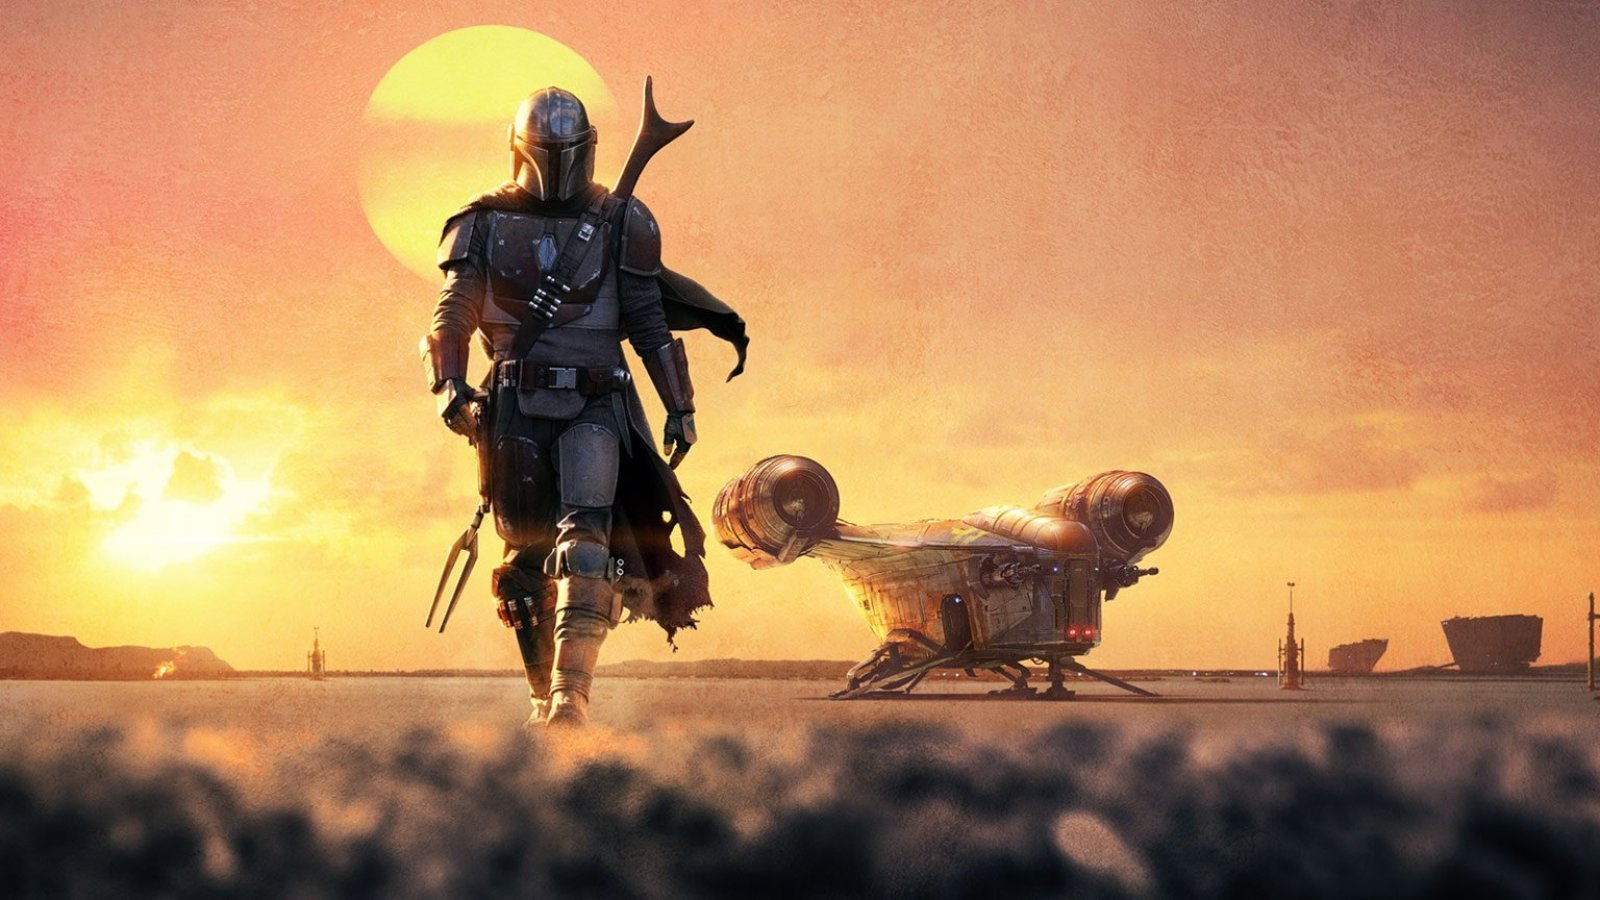 The Mandalorian walking in front of the sunset